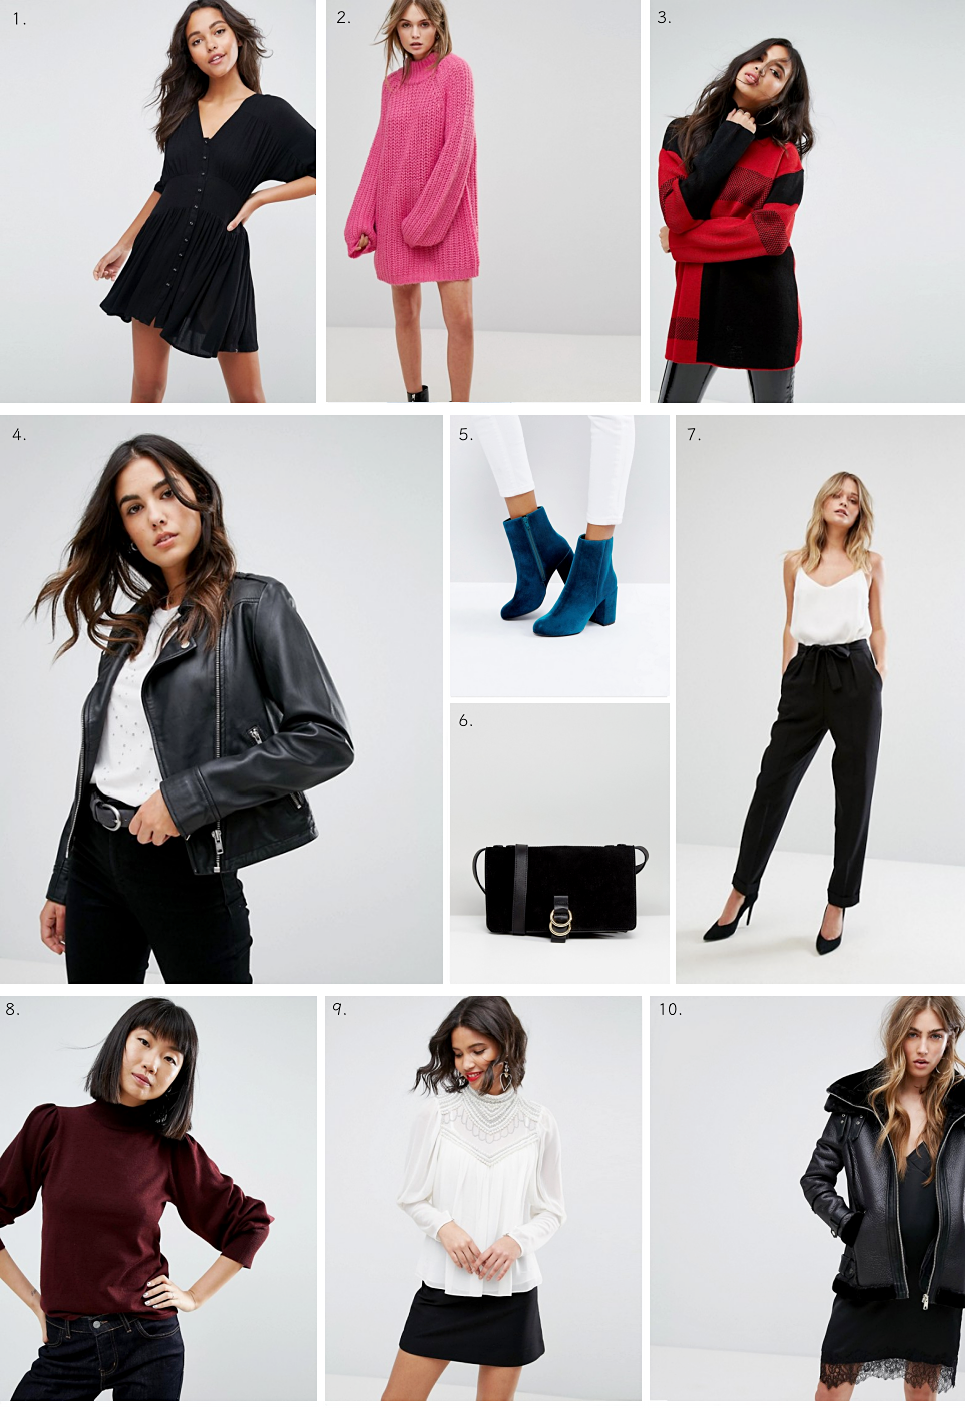 ASOS Autumn Winter Top Picks